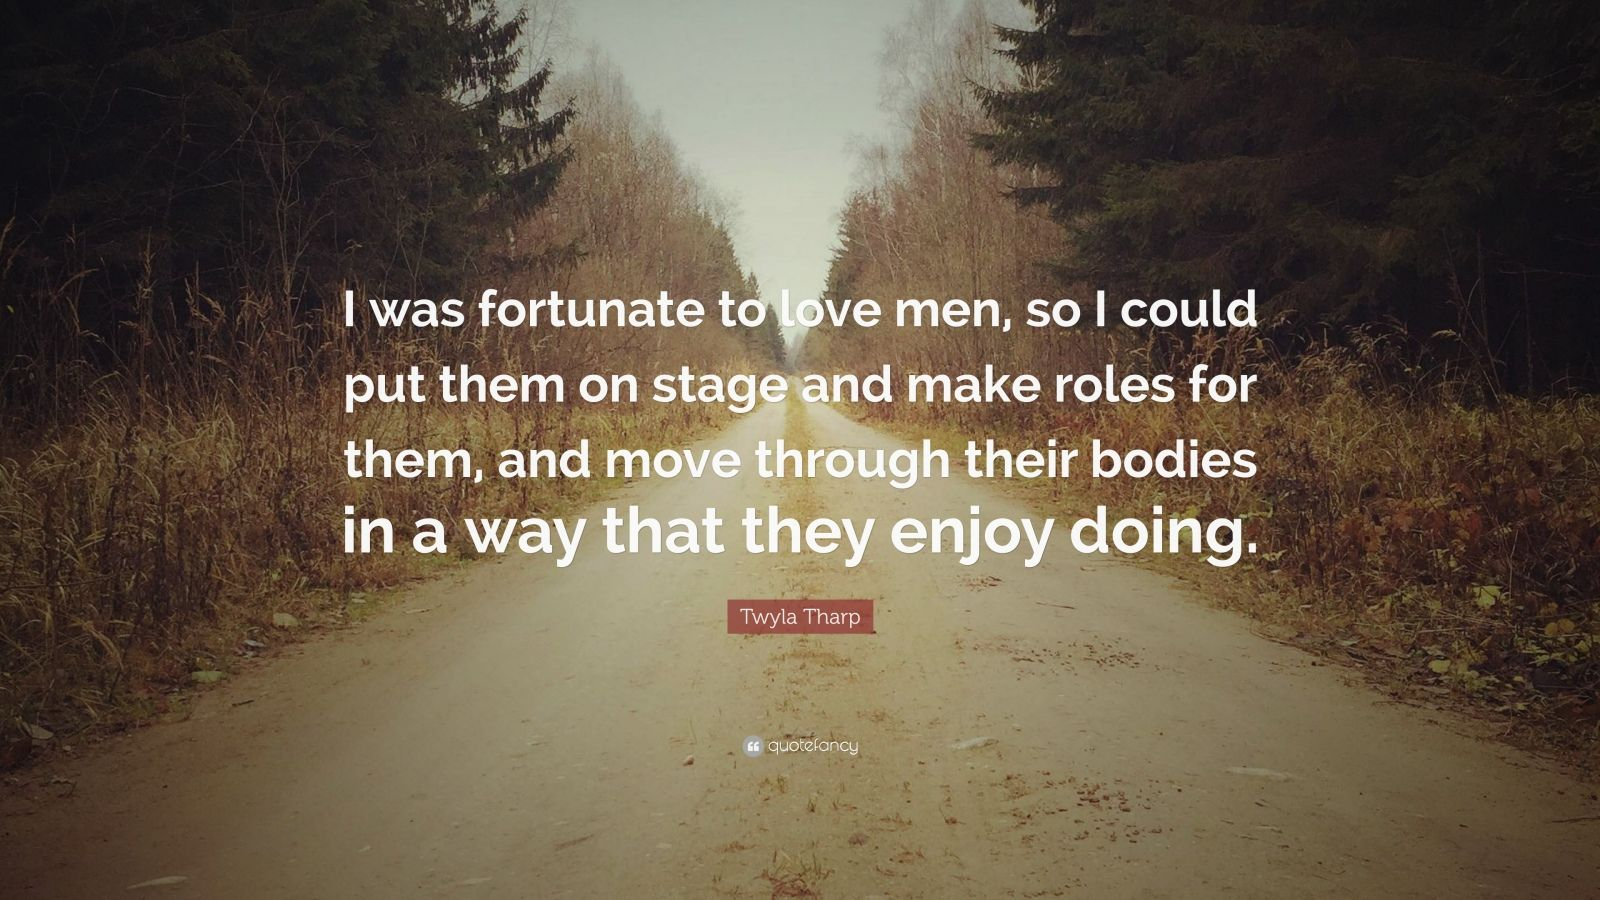 """Twyla Tharp Quote: """"I was fortunate to love men, so I could put them on stage and make roles for them, and move through their bodies in a way that they enjoy doing."""""""